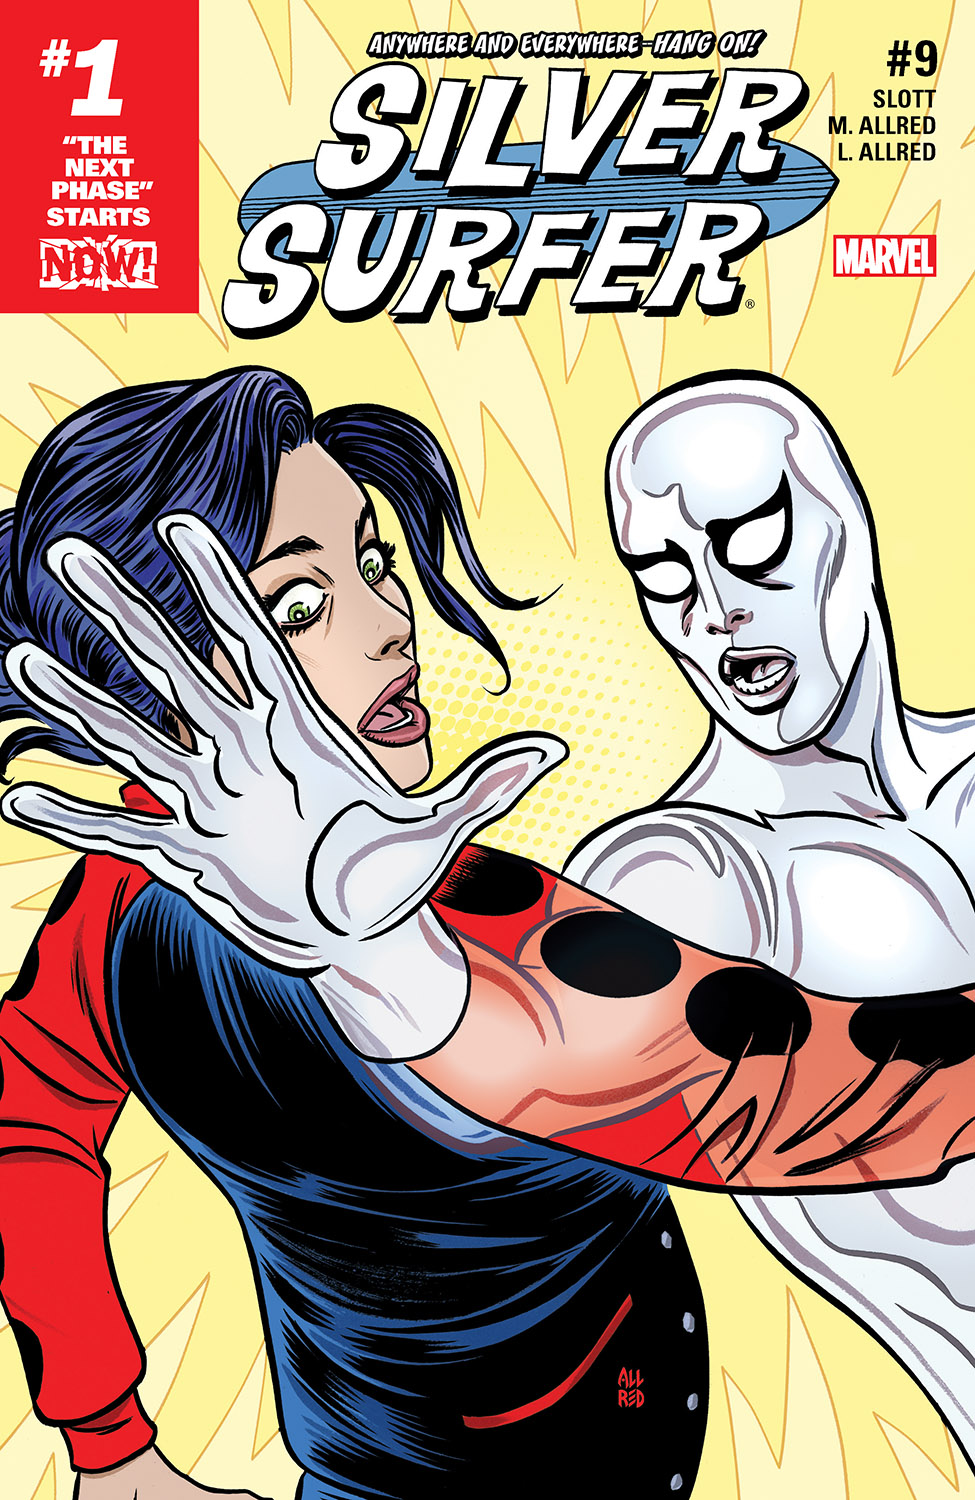 Silver Surfer (2016) #9